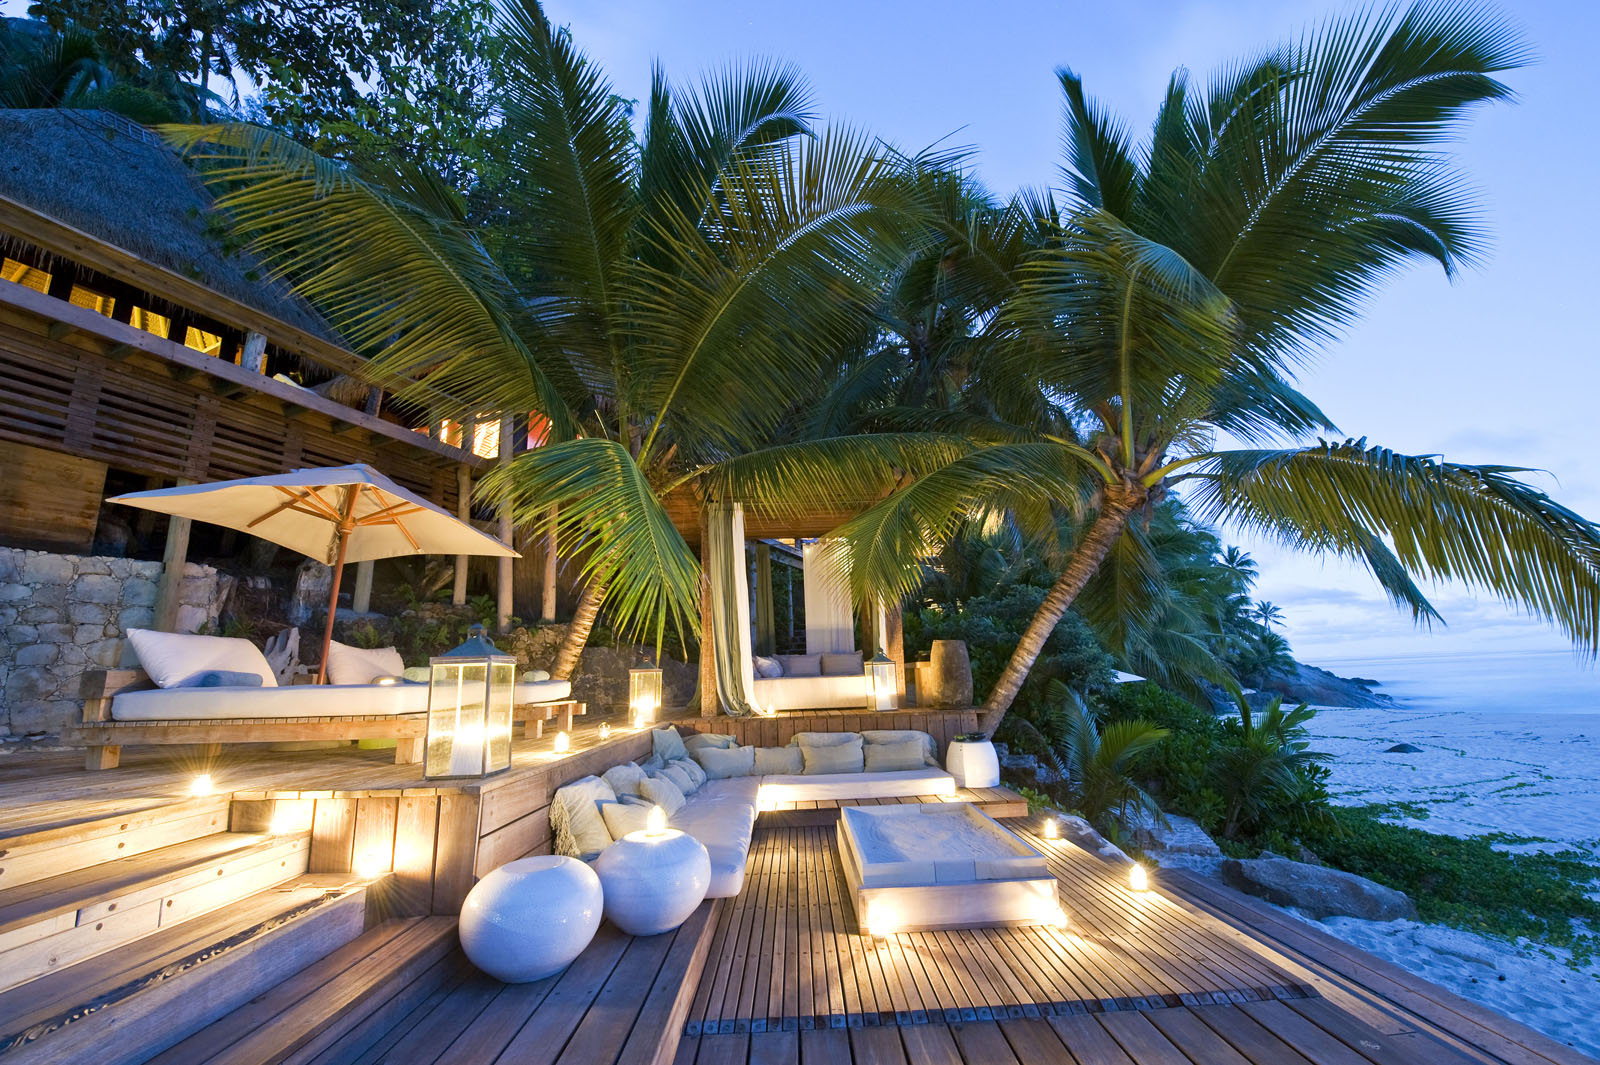 Luxury Escapes 2018 - North Island Resort Seychelles - luxury hotels - animal lover vacations - noah's ark conservation - eco-travel destinations